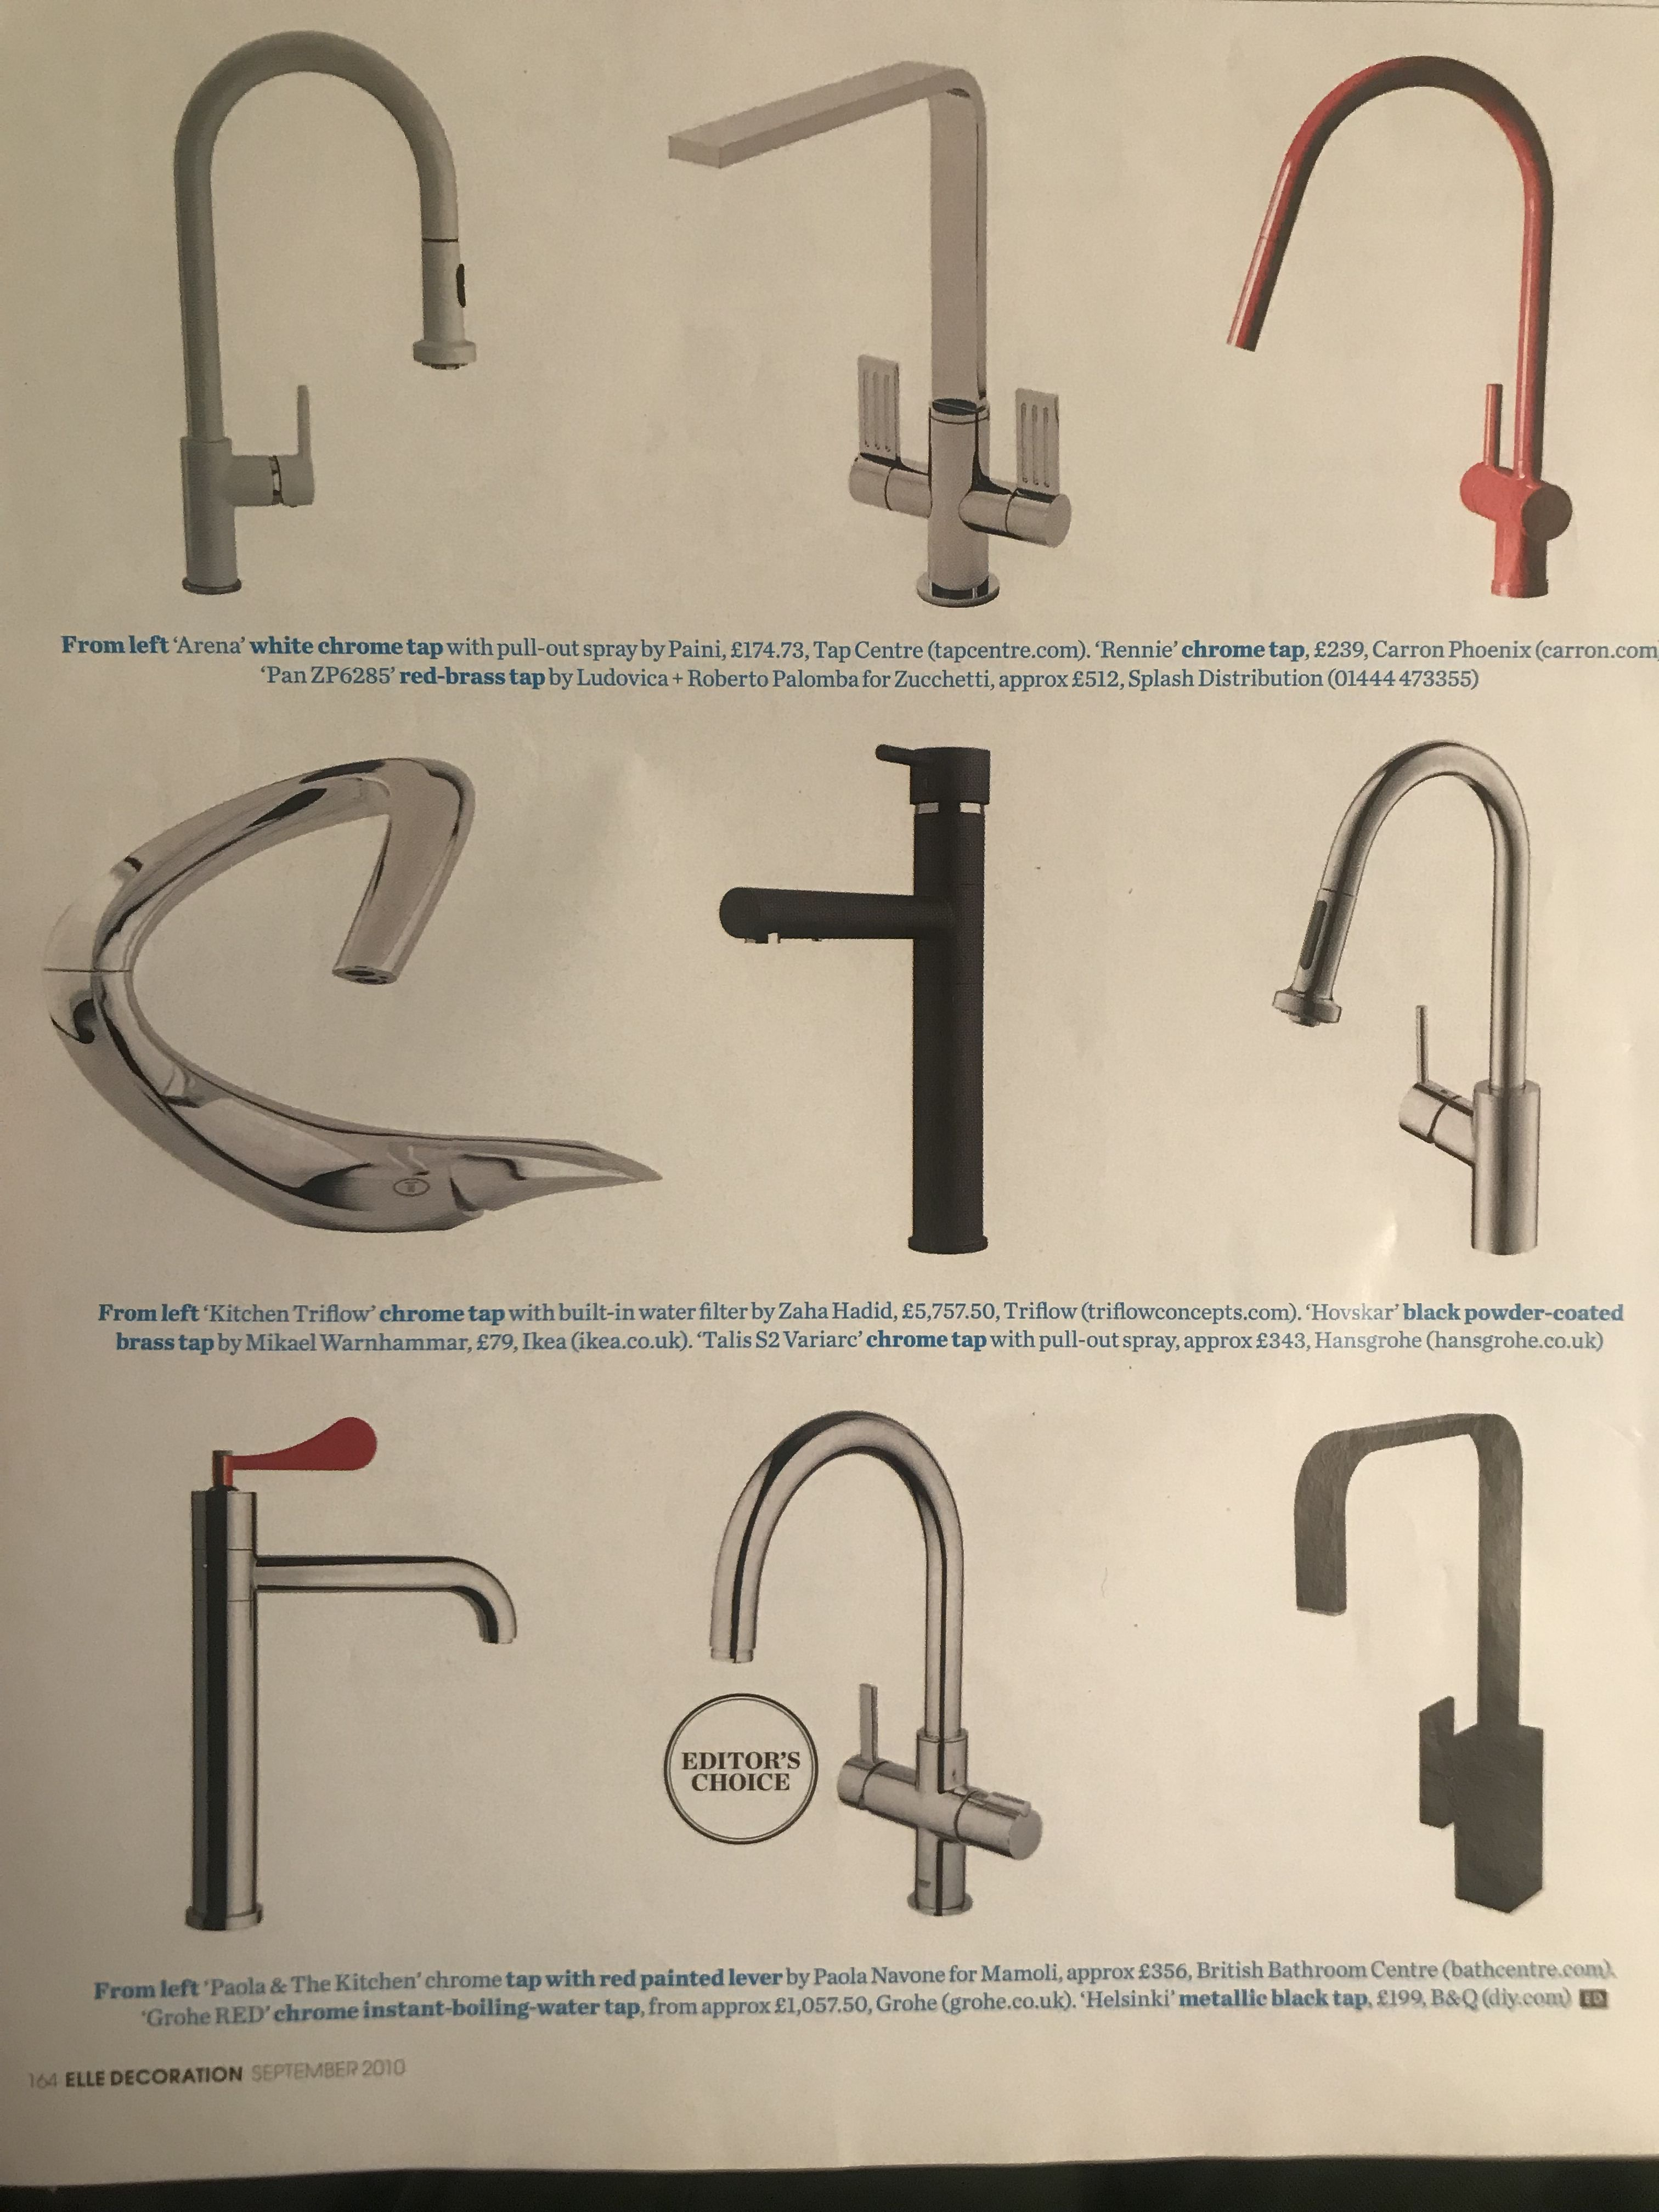 View Cooke Lewis Timeless 2 Lever Basin Mixer Tap Details Basin Mixer Taps Basin Mixer Mixer Taps